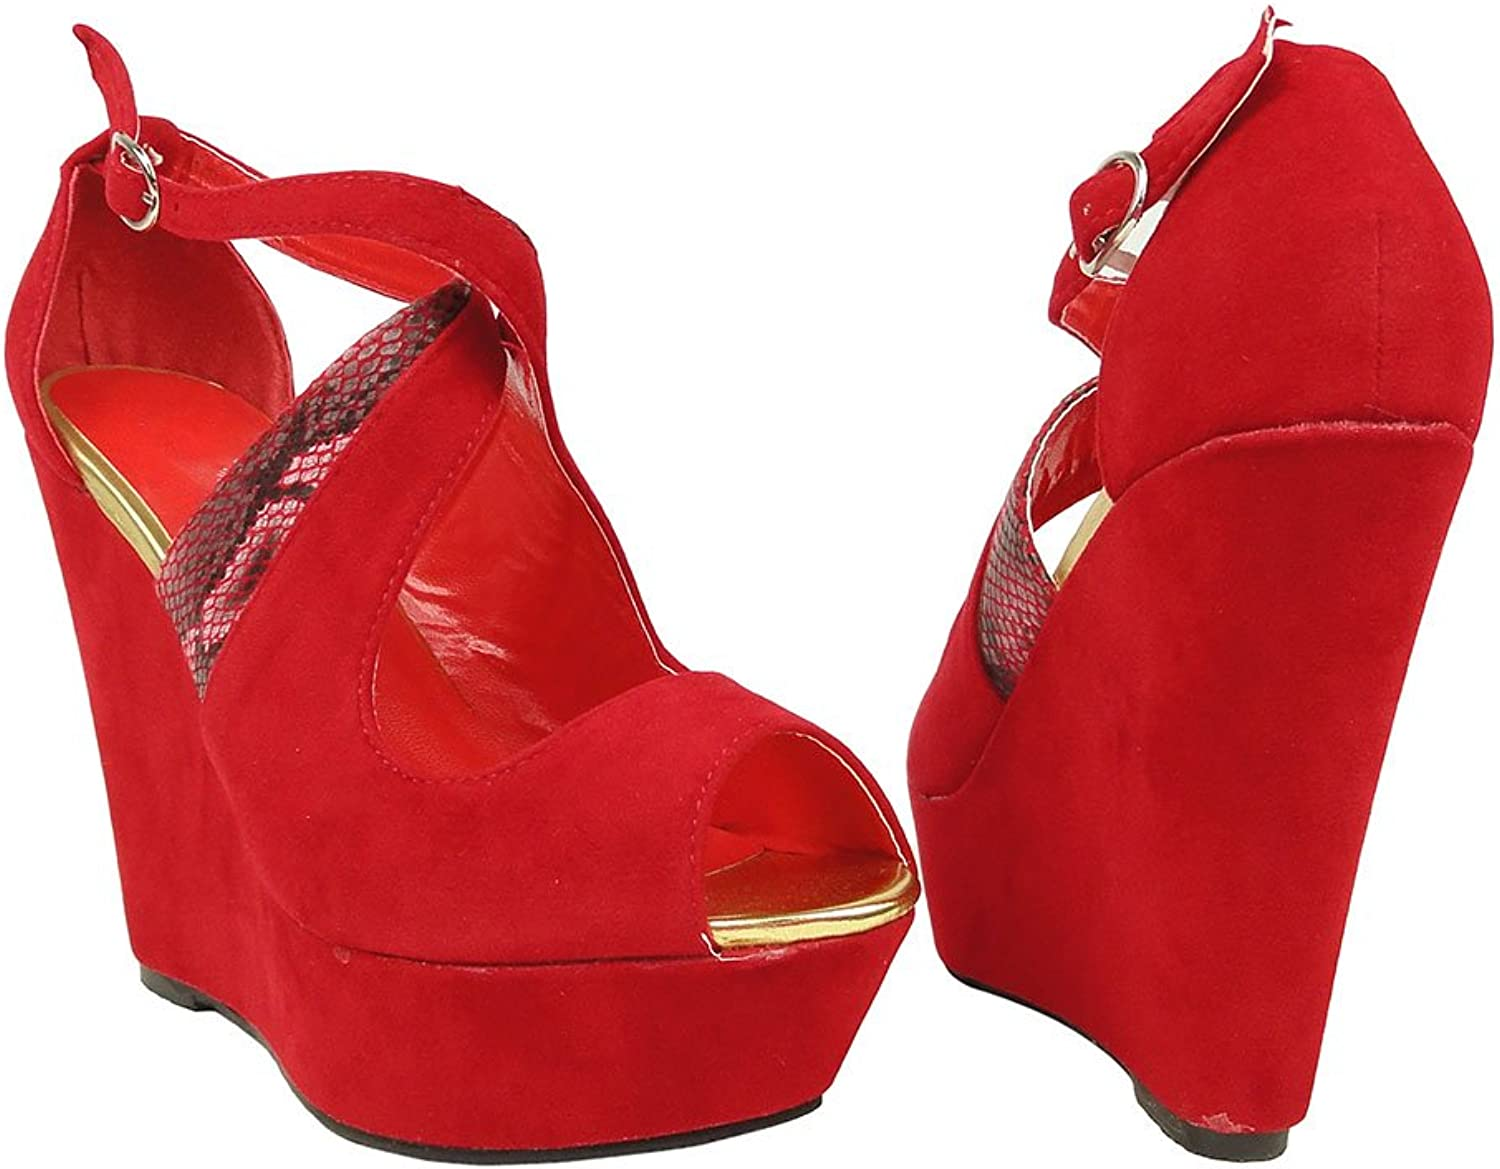 DS By KSC Womens Peep Toe Platform Strappy Snake Wedges Sandals Faux Suede Red